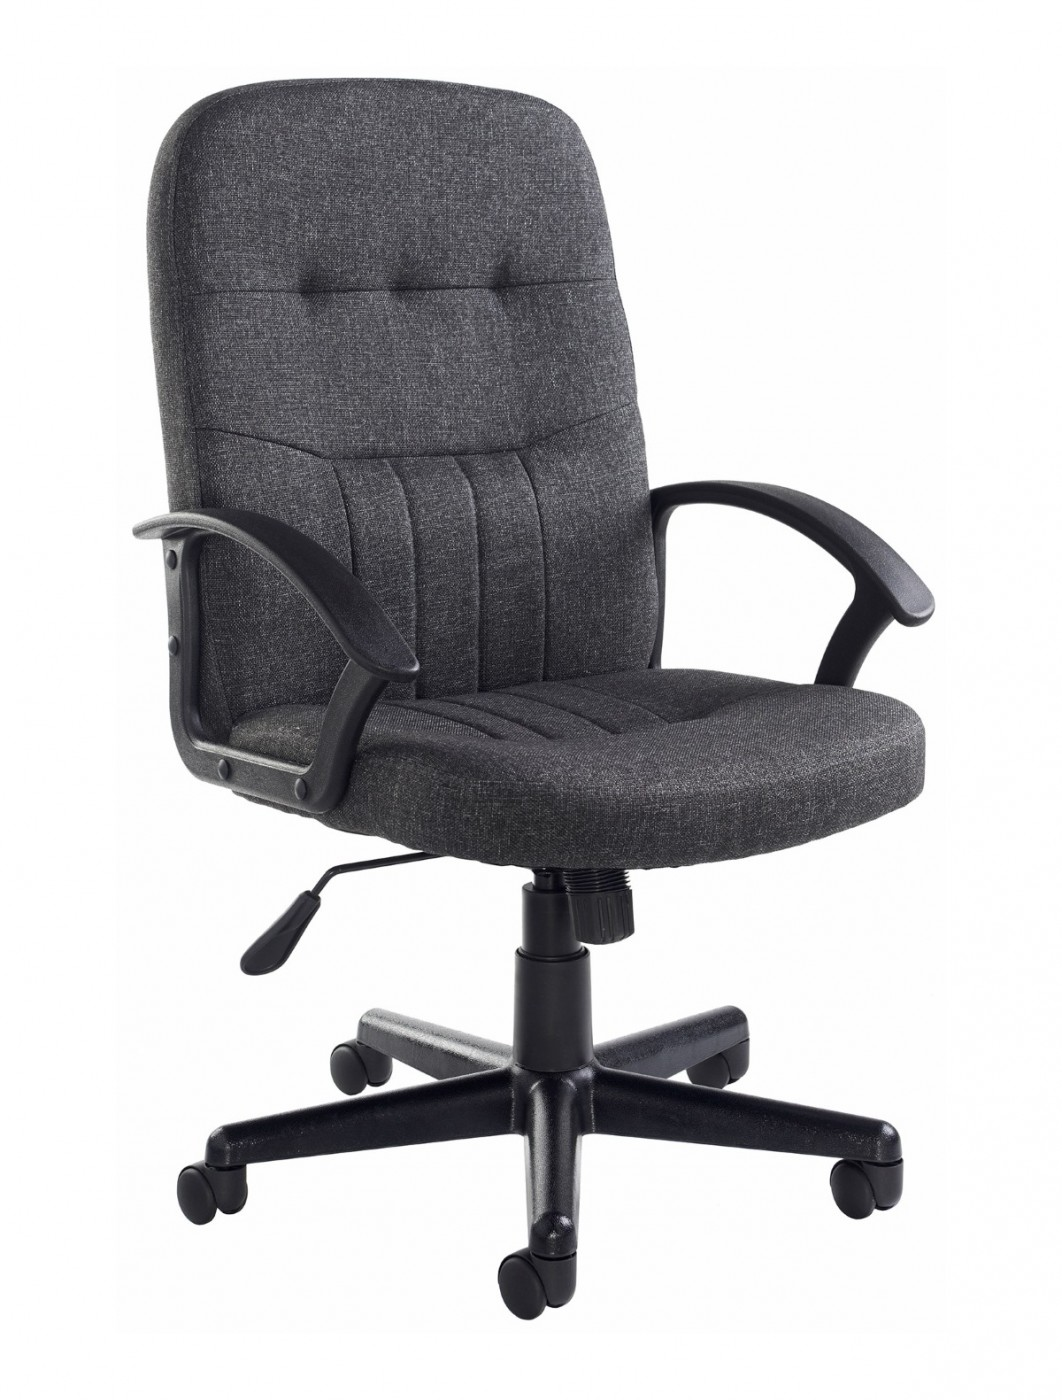 Office Chairs  Cavalier Charcoal Office Chair CAV300T1C